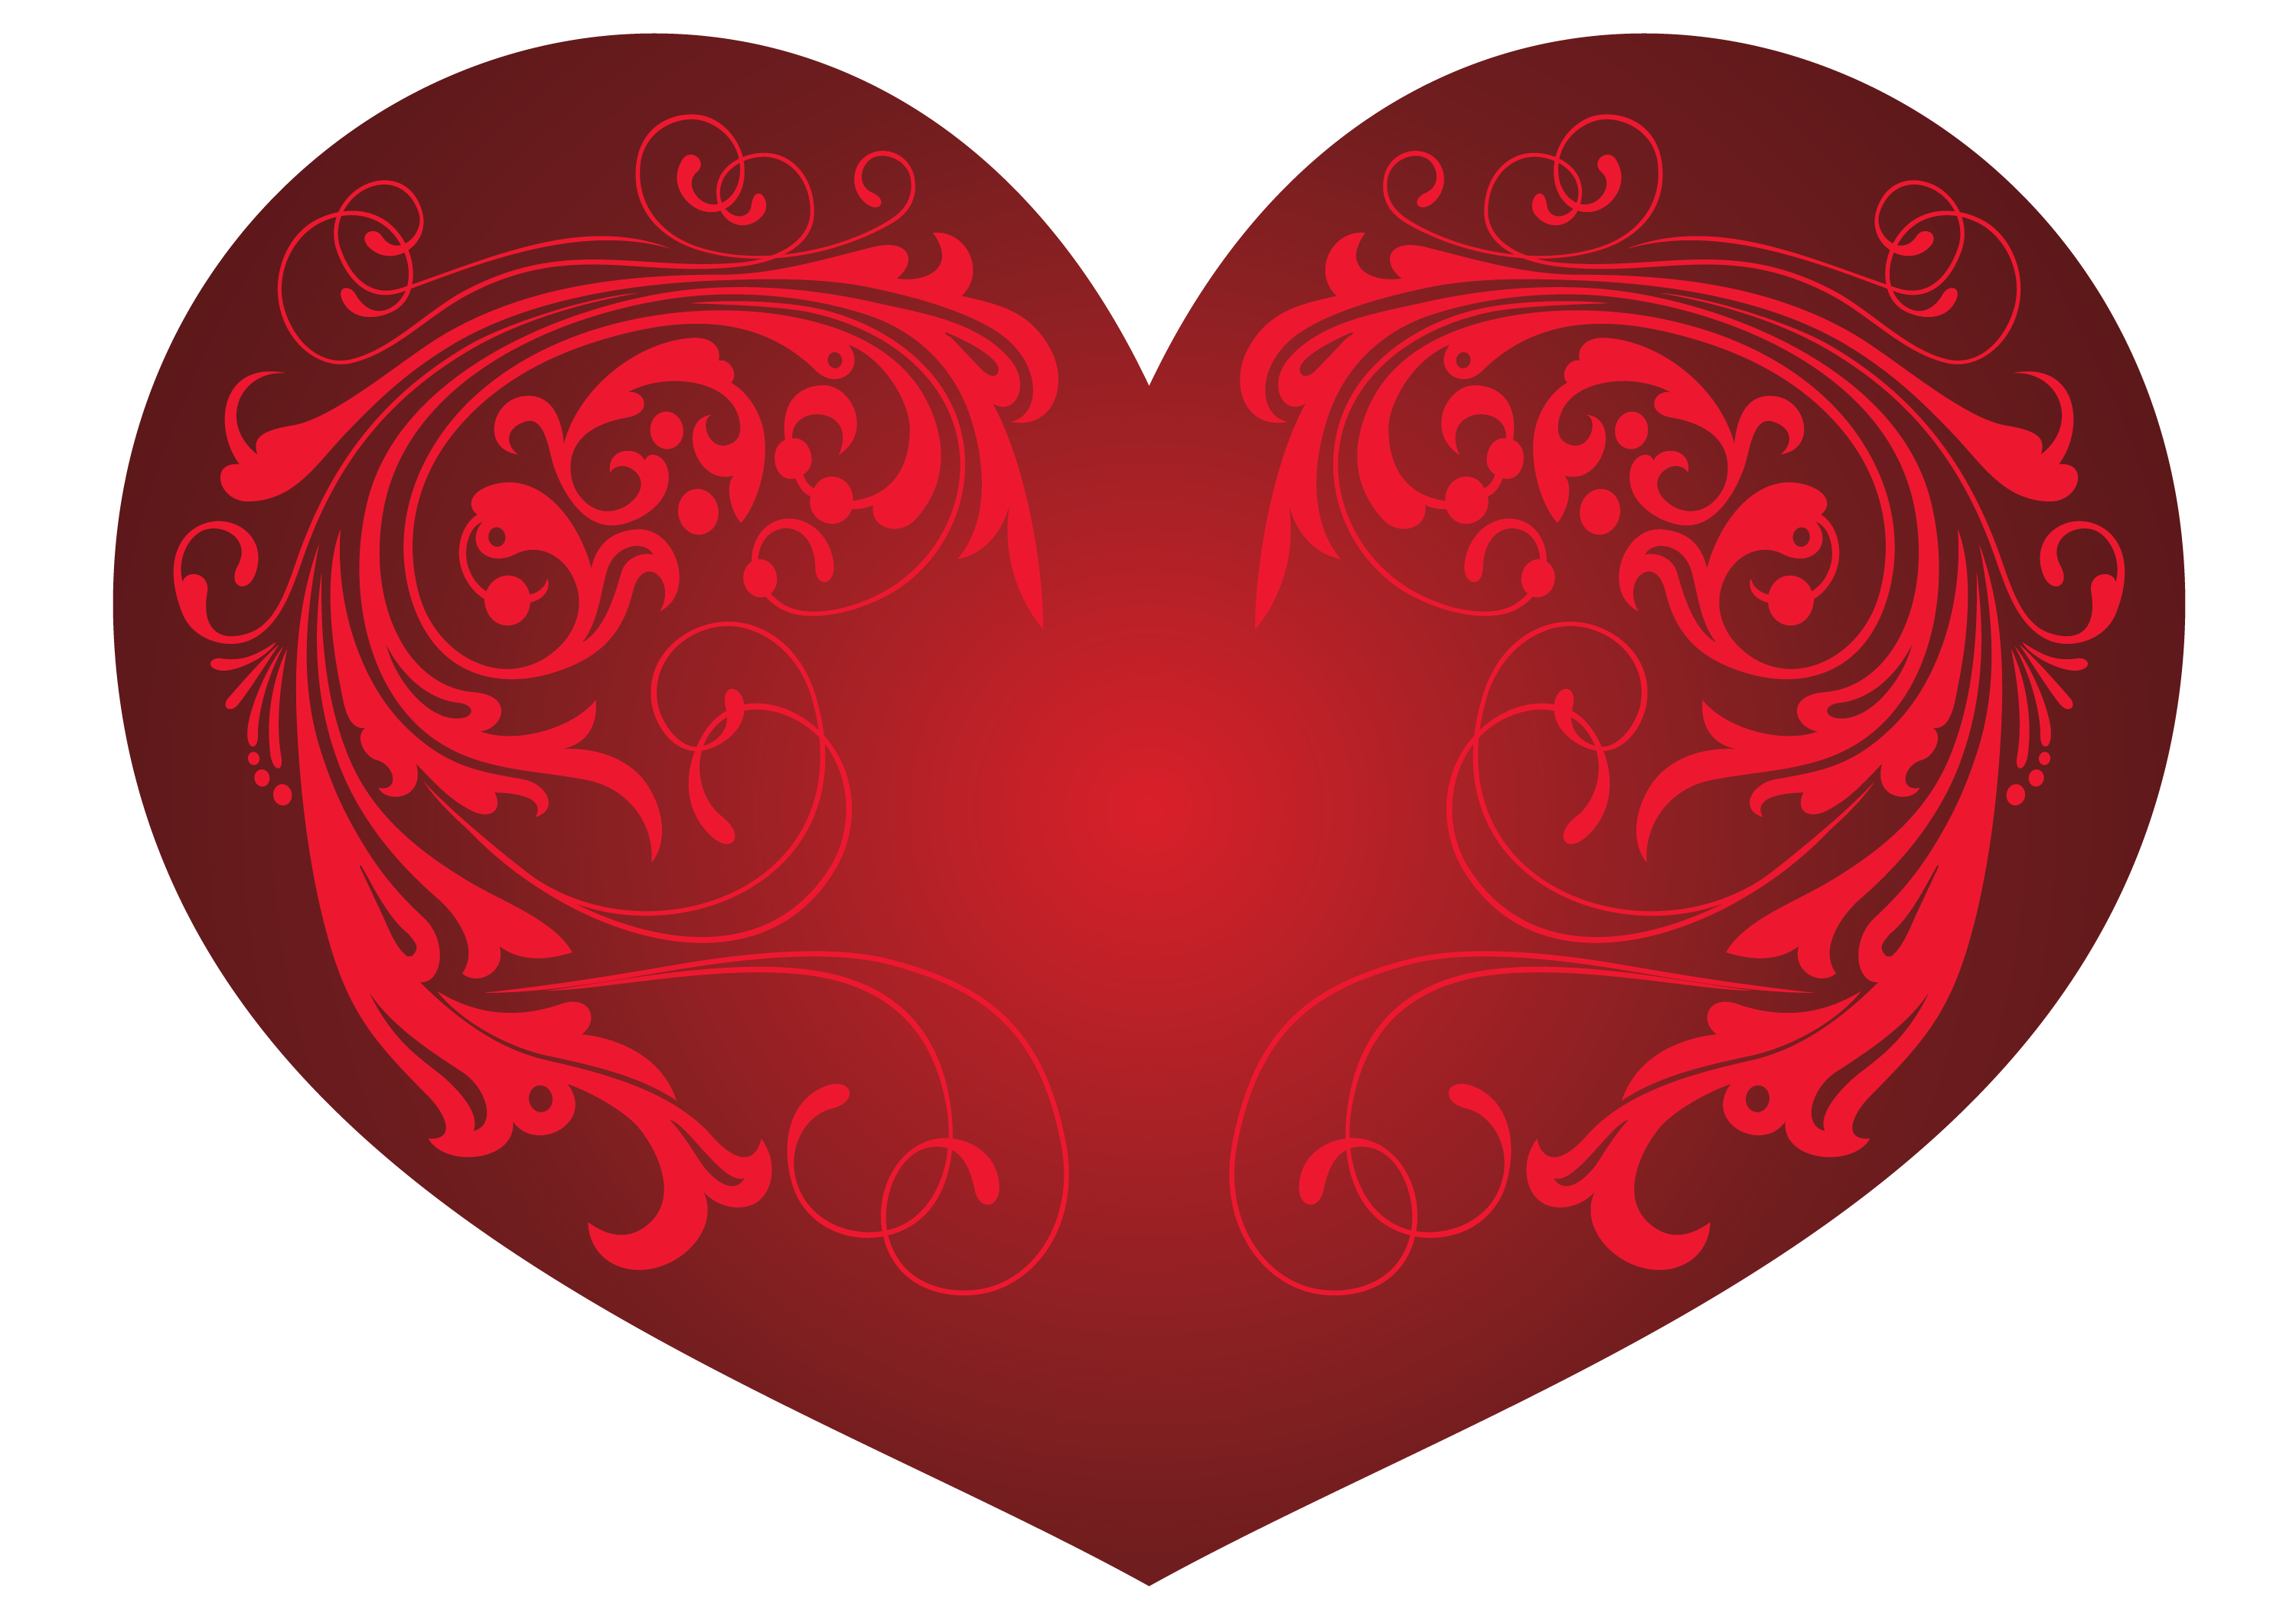 Heart and ornaments clipart. Red hearts png clip art black and white